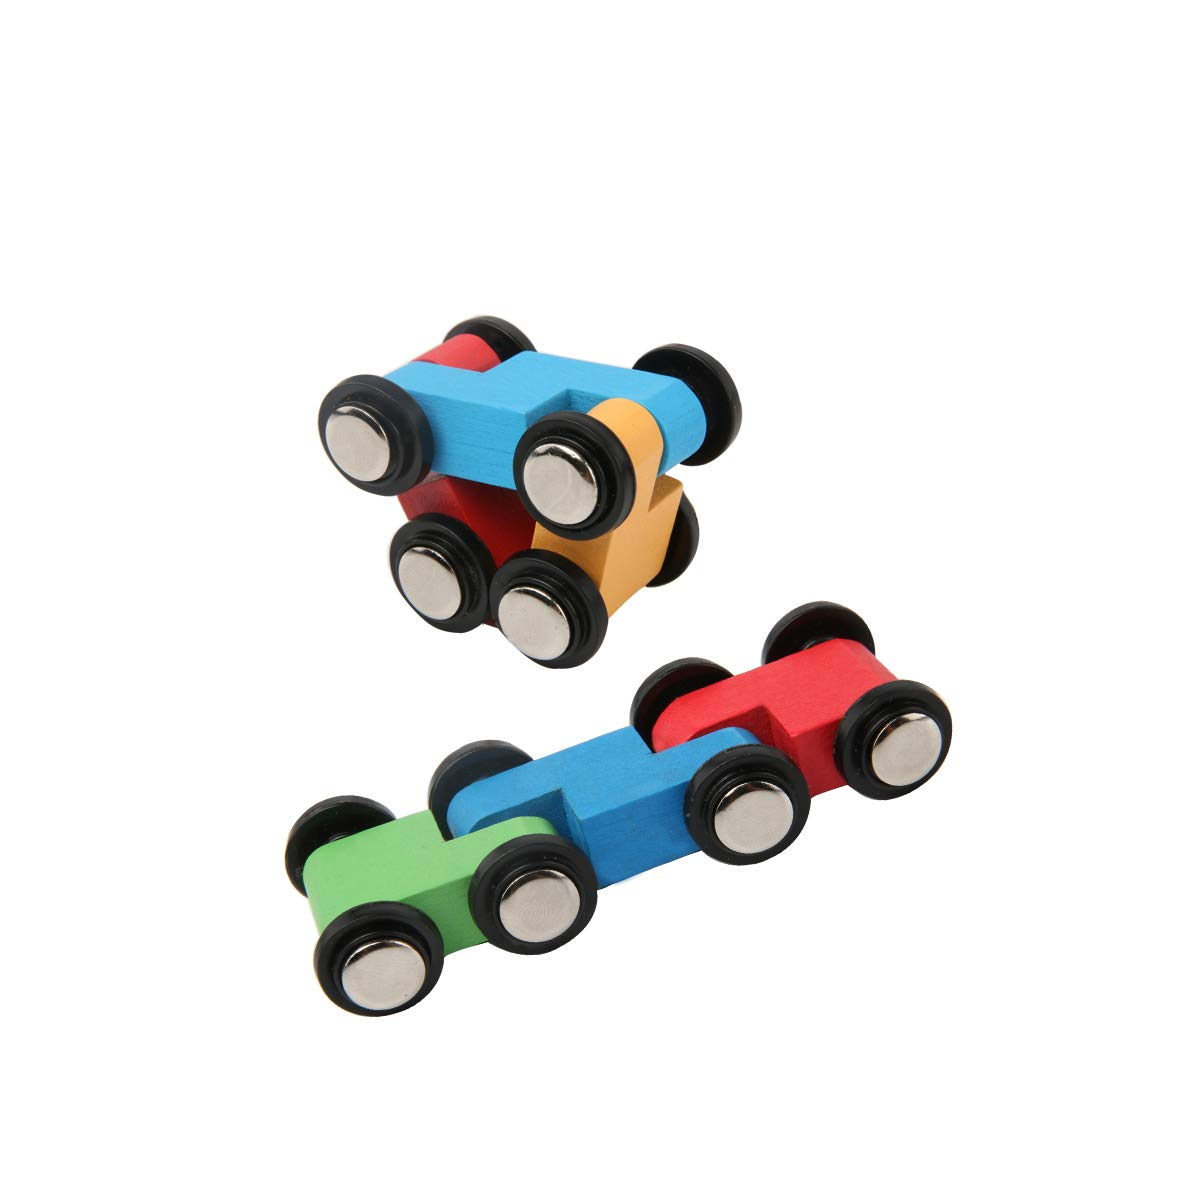 donado Wooden Car Ramp Race Red-Blue-Yellow 10 Level Toy Car Ramp Race Set for Kids 3+